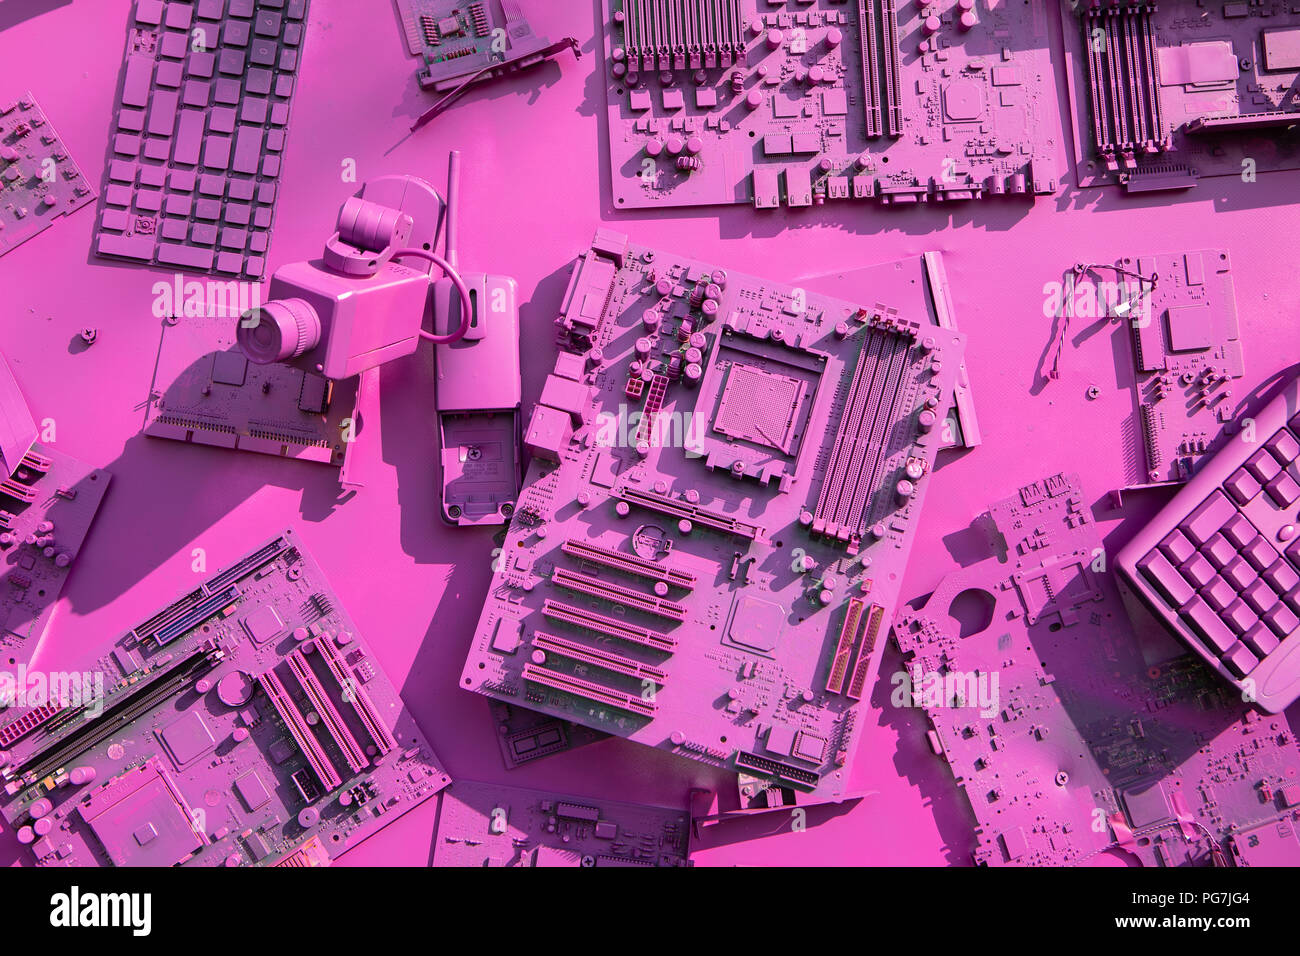 a collage of old computer components in purple color stock photo